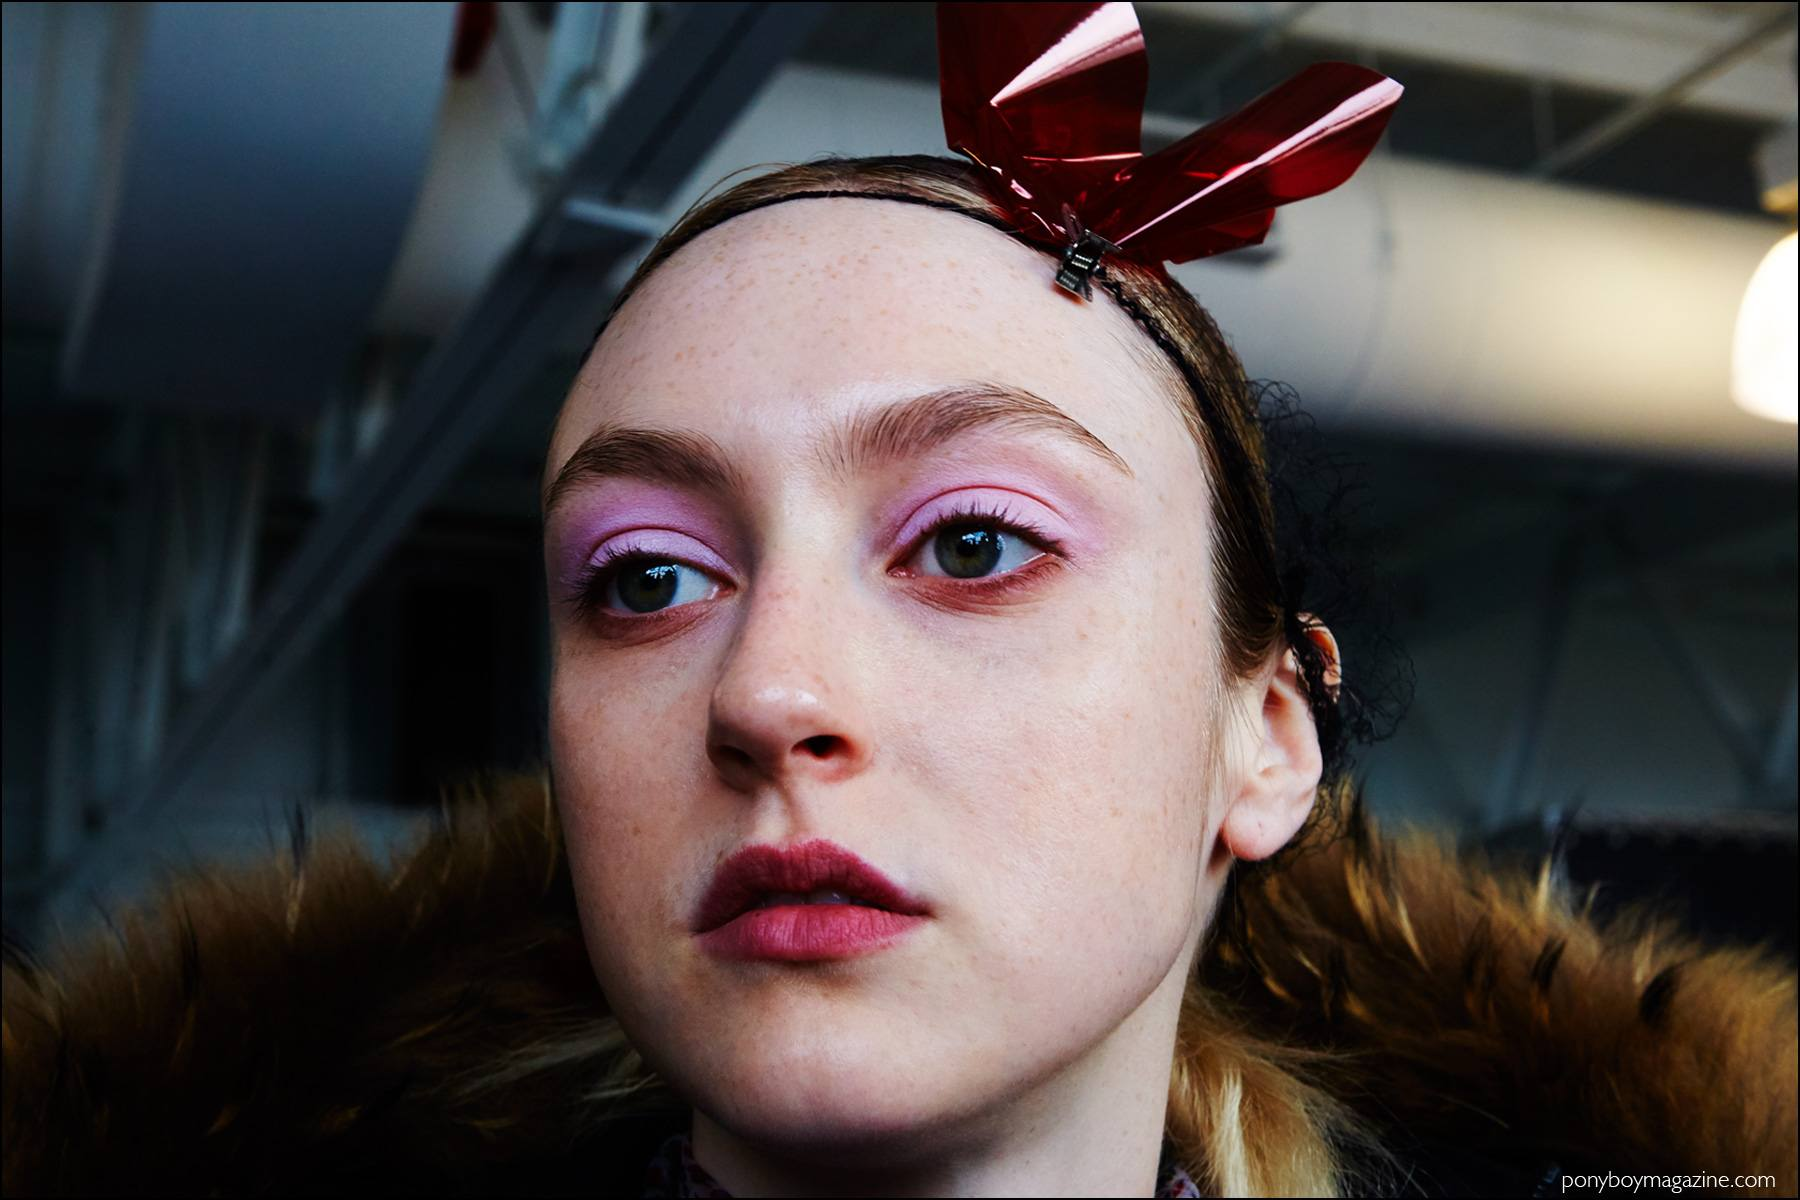 Dramatic eyeshadow photographed backstage at Milly F/W16 womenswear show. Photography by Alexander Thompson for Ponyboy magazine NY.